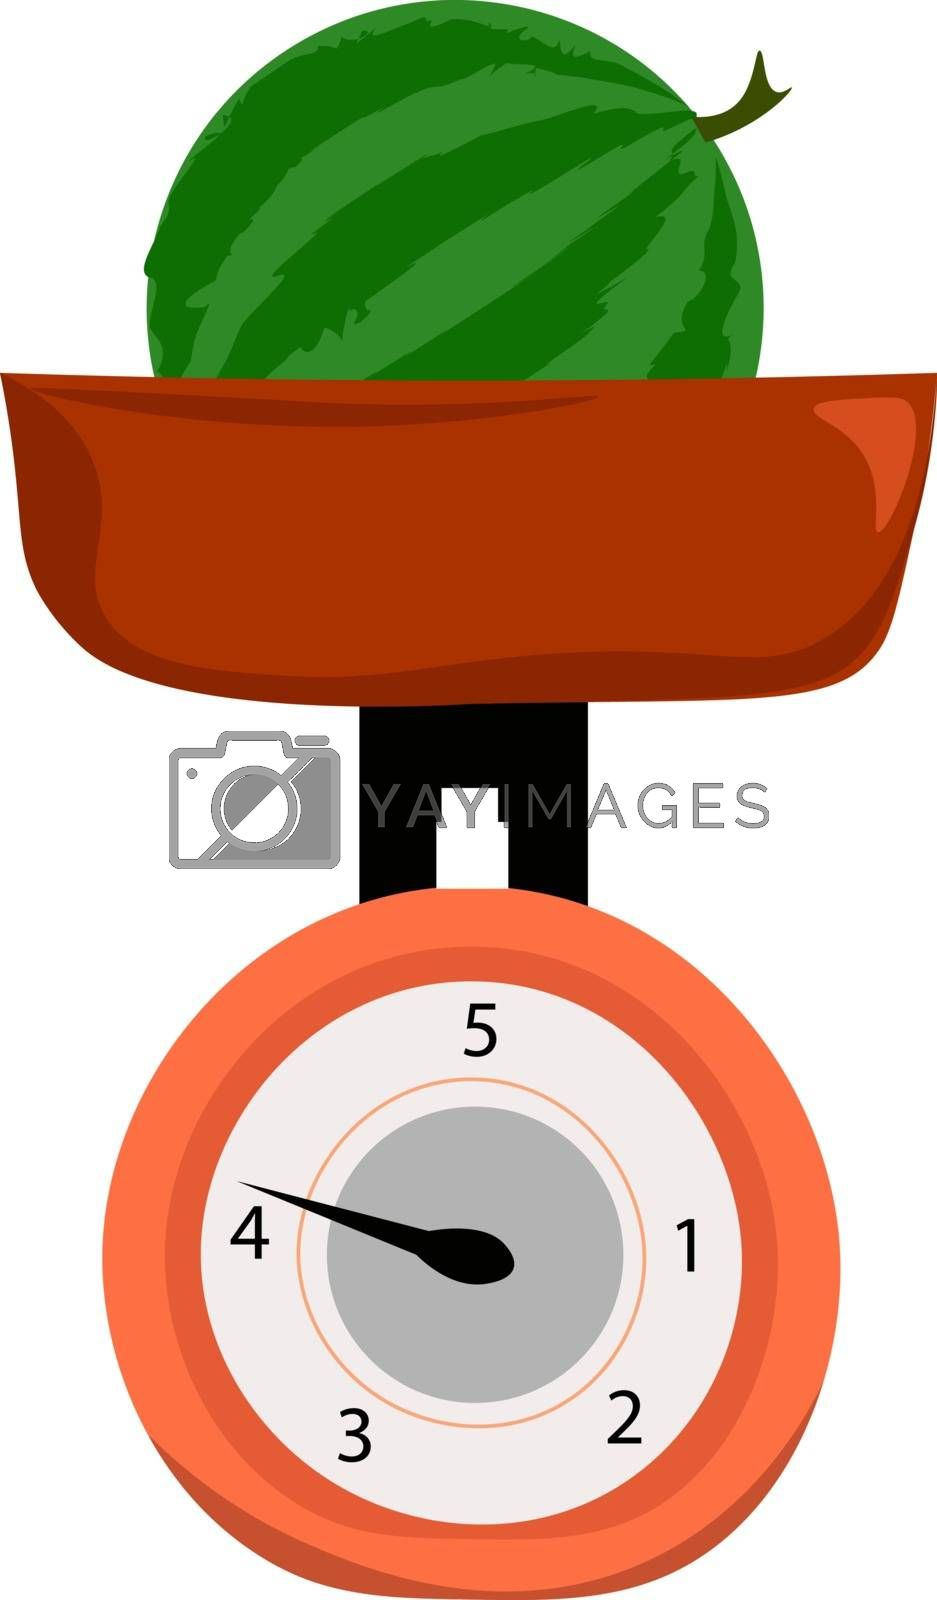 Royalty free image of Clipart of a whole watermelon weighed on weighing scale vector o by Morphart